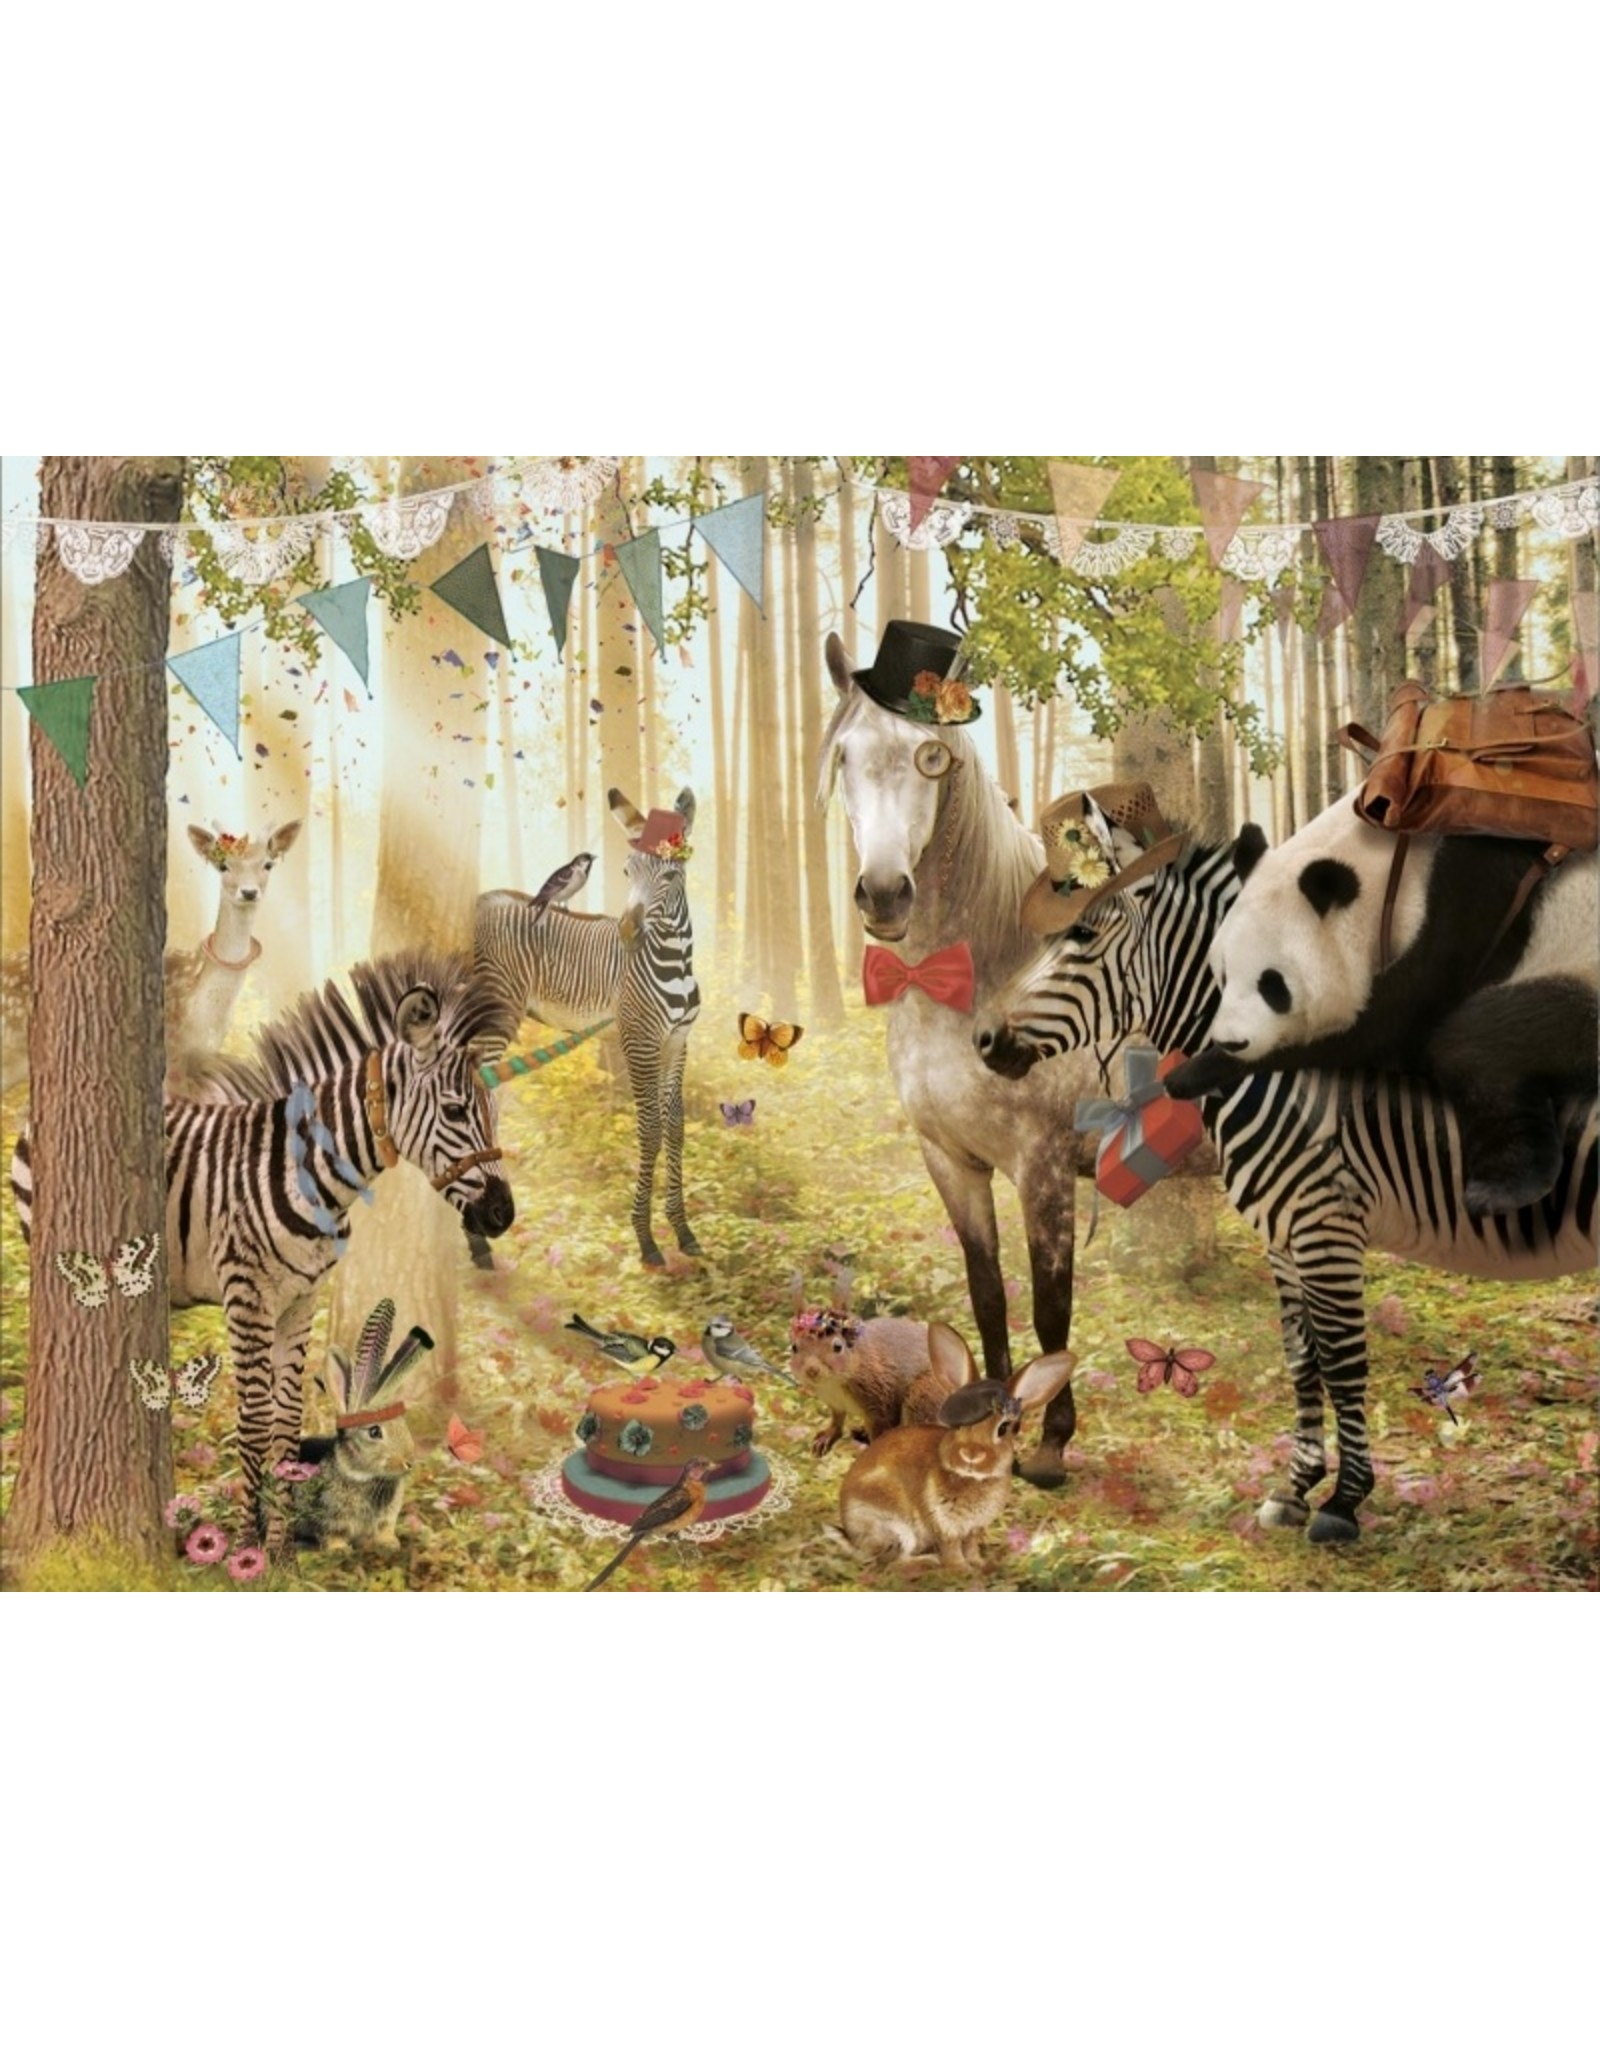 Postcard - party in the forest